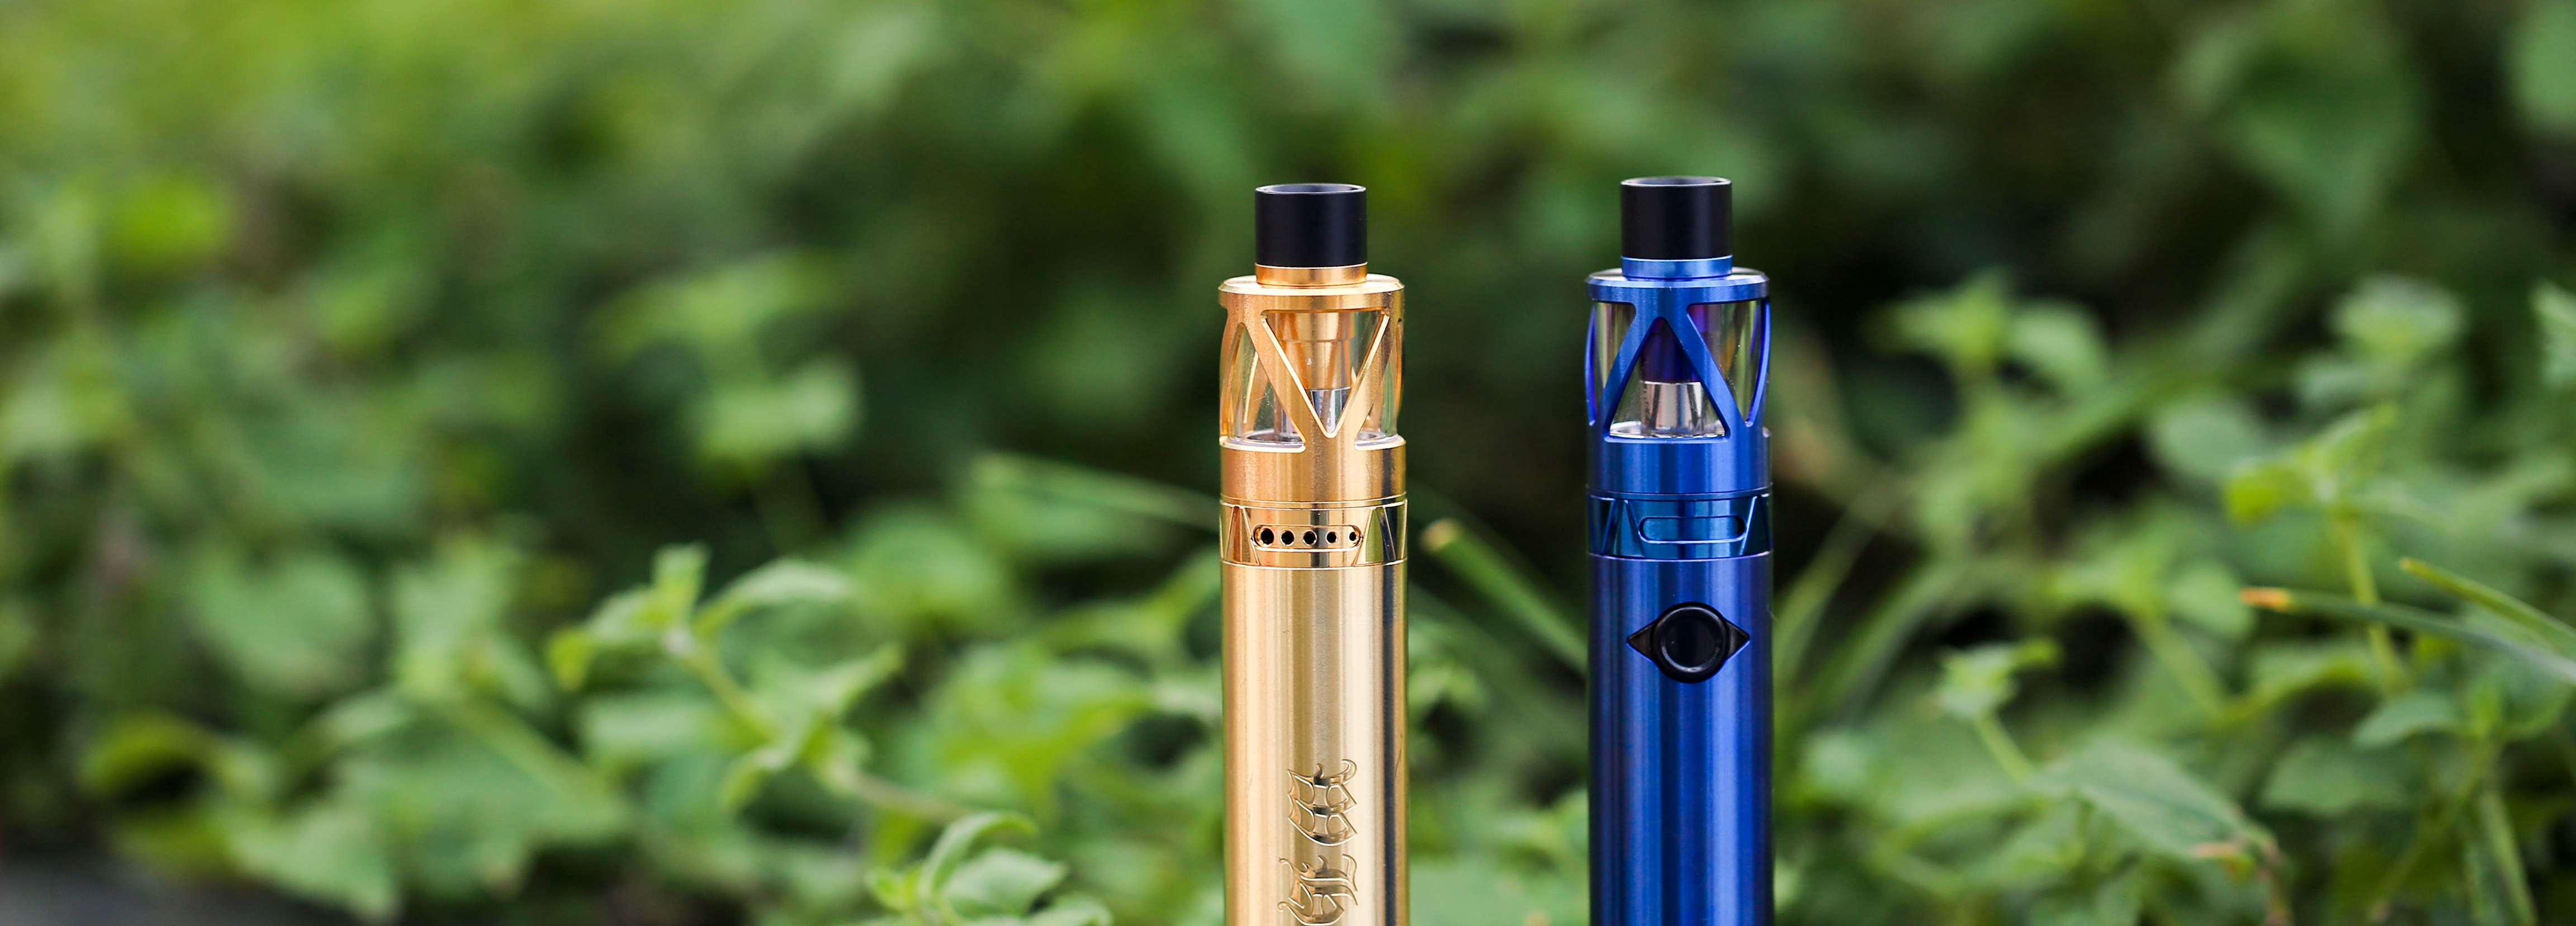 Promote Local Business Legalise vaping in Queensland